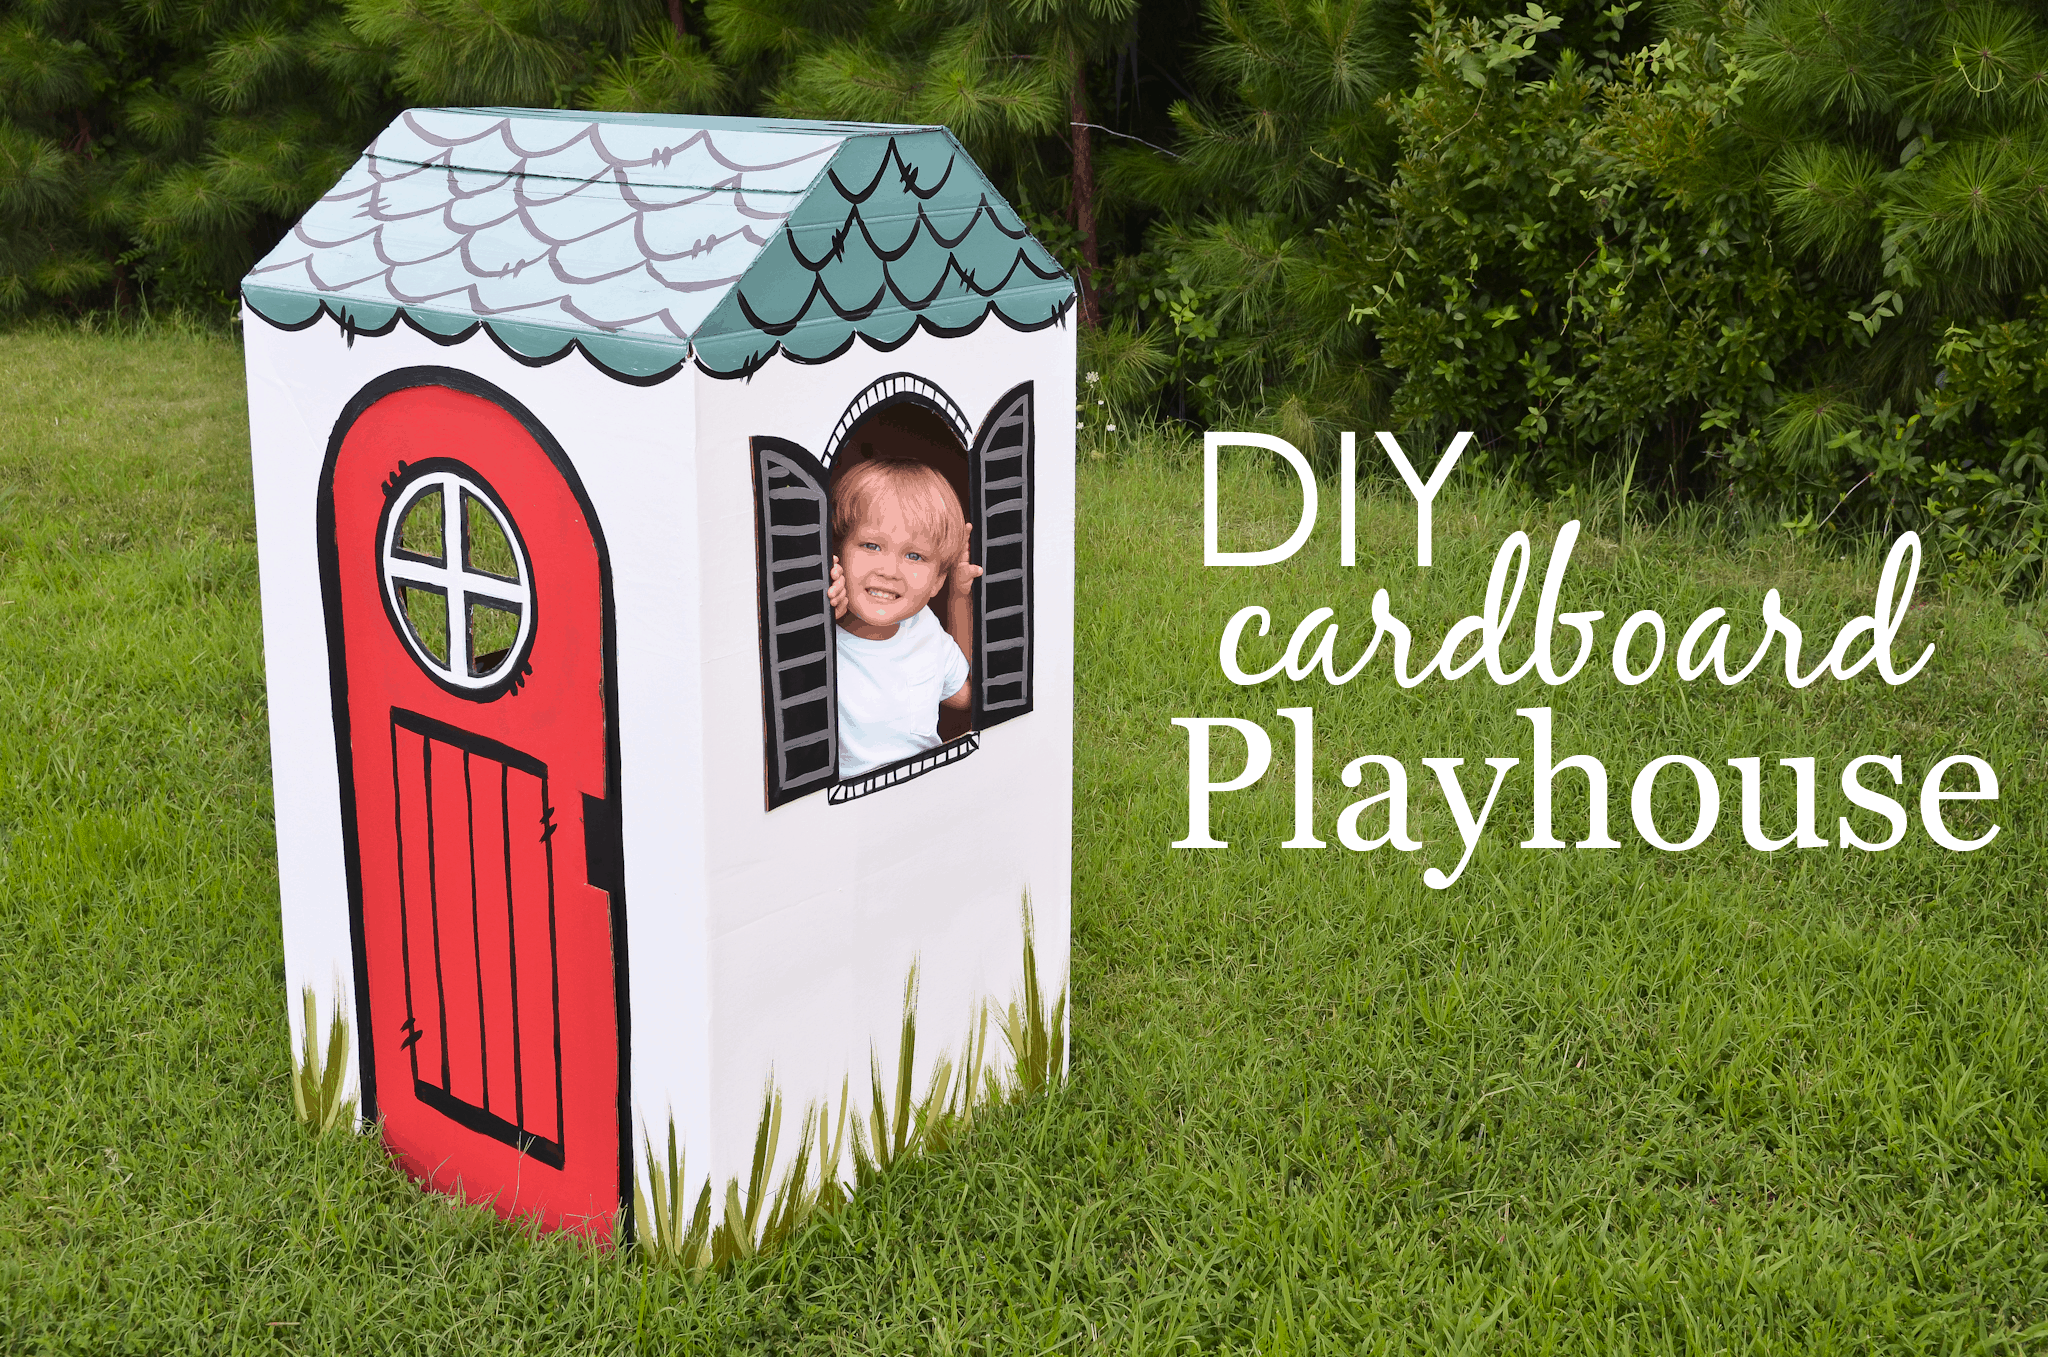 Diy cardboard playhouse